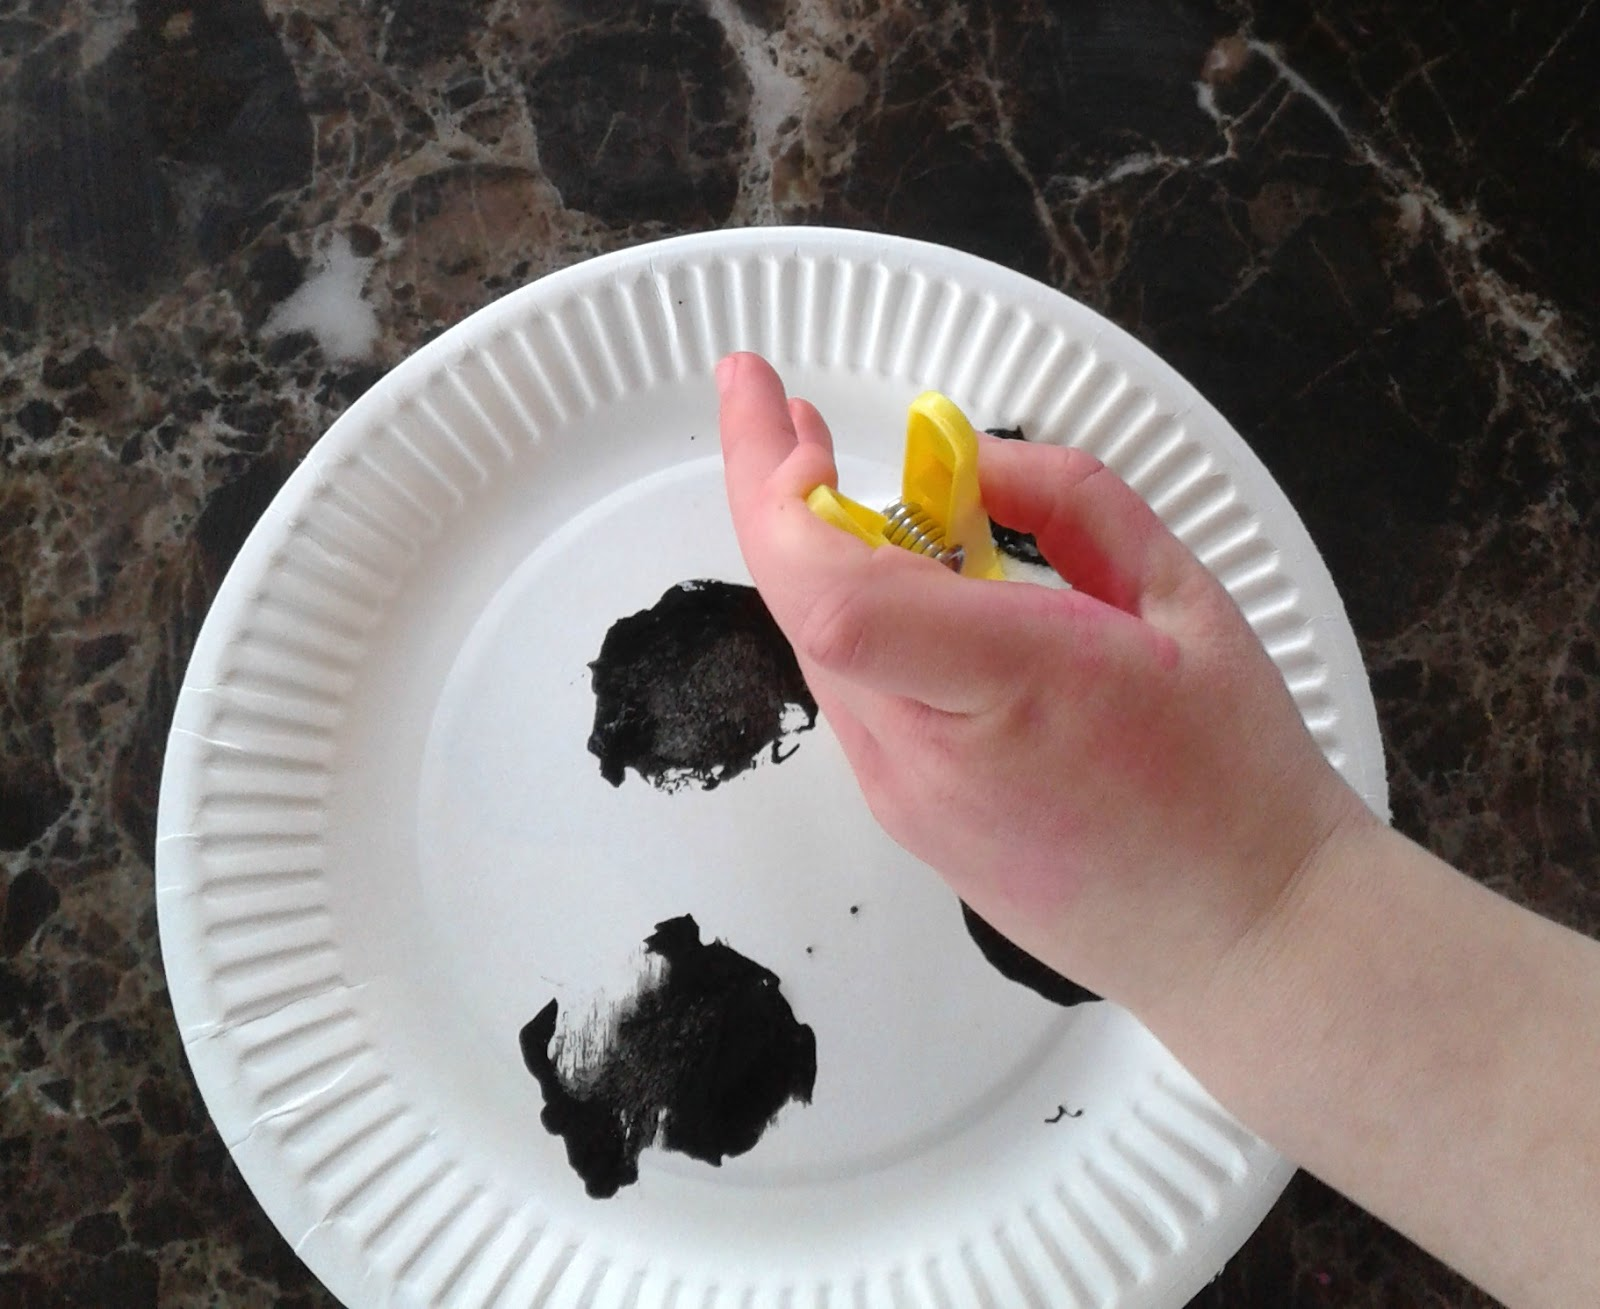 Click Clack Moo Cows That Type Cow Paper Plate Mask. At the end they chose Click Clack Moo Cows That Type ... & Miss Zolkosky\u0027s Kindergarten Class: Reese\u0027s Paper Plate Cow | Free ...